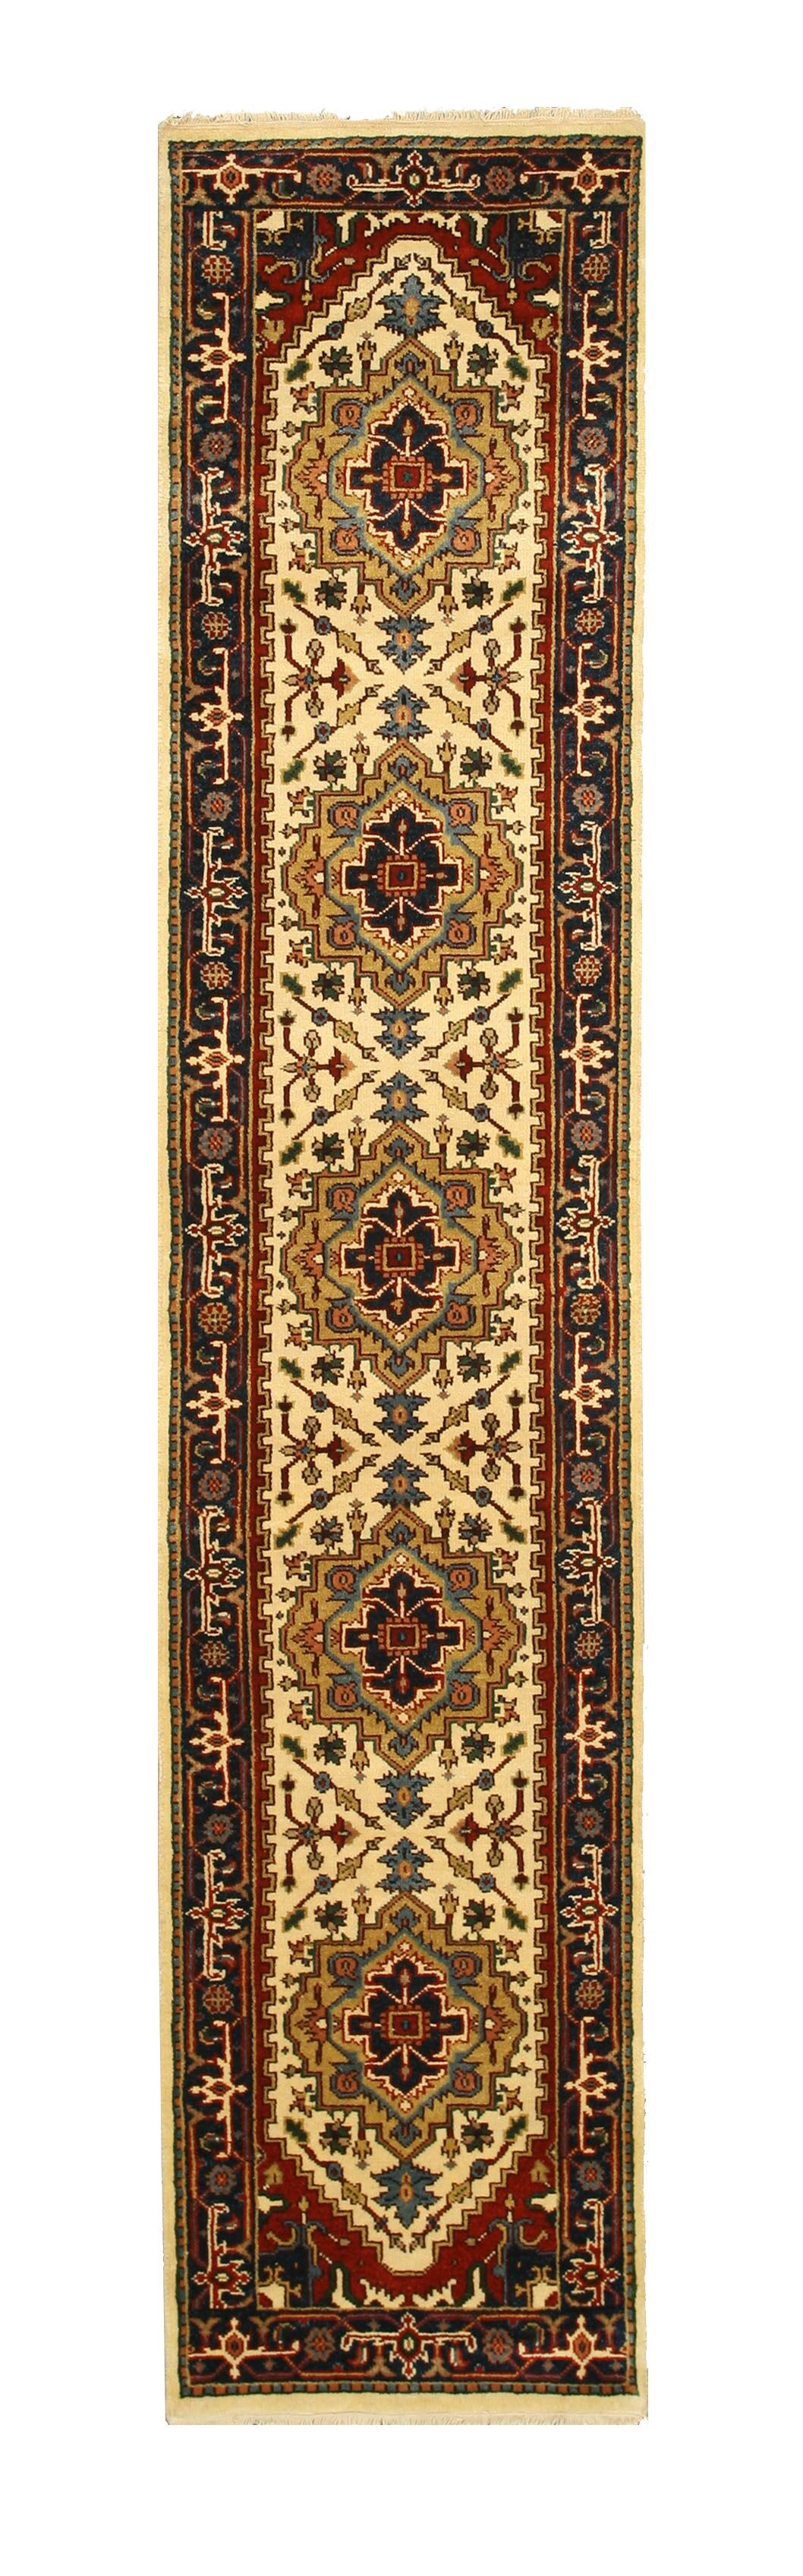 Hand-Knotted Brown/Beige Area Rug Rug Size: Runner 2'6